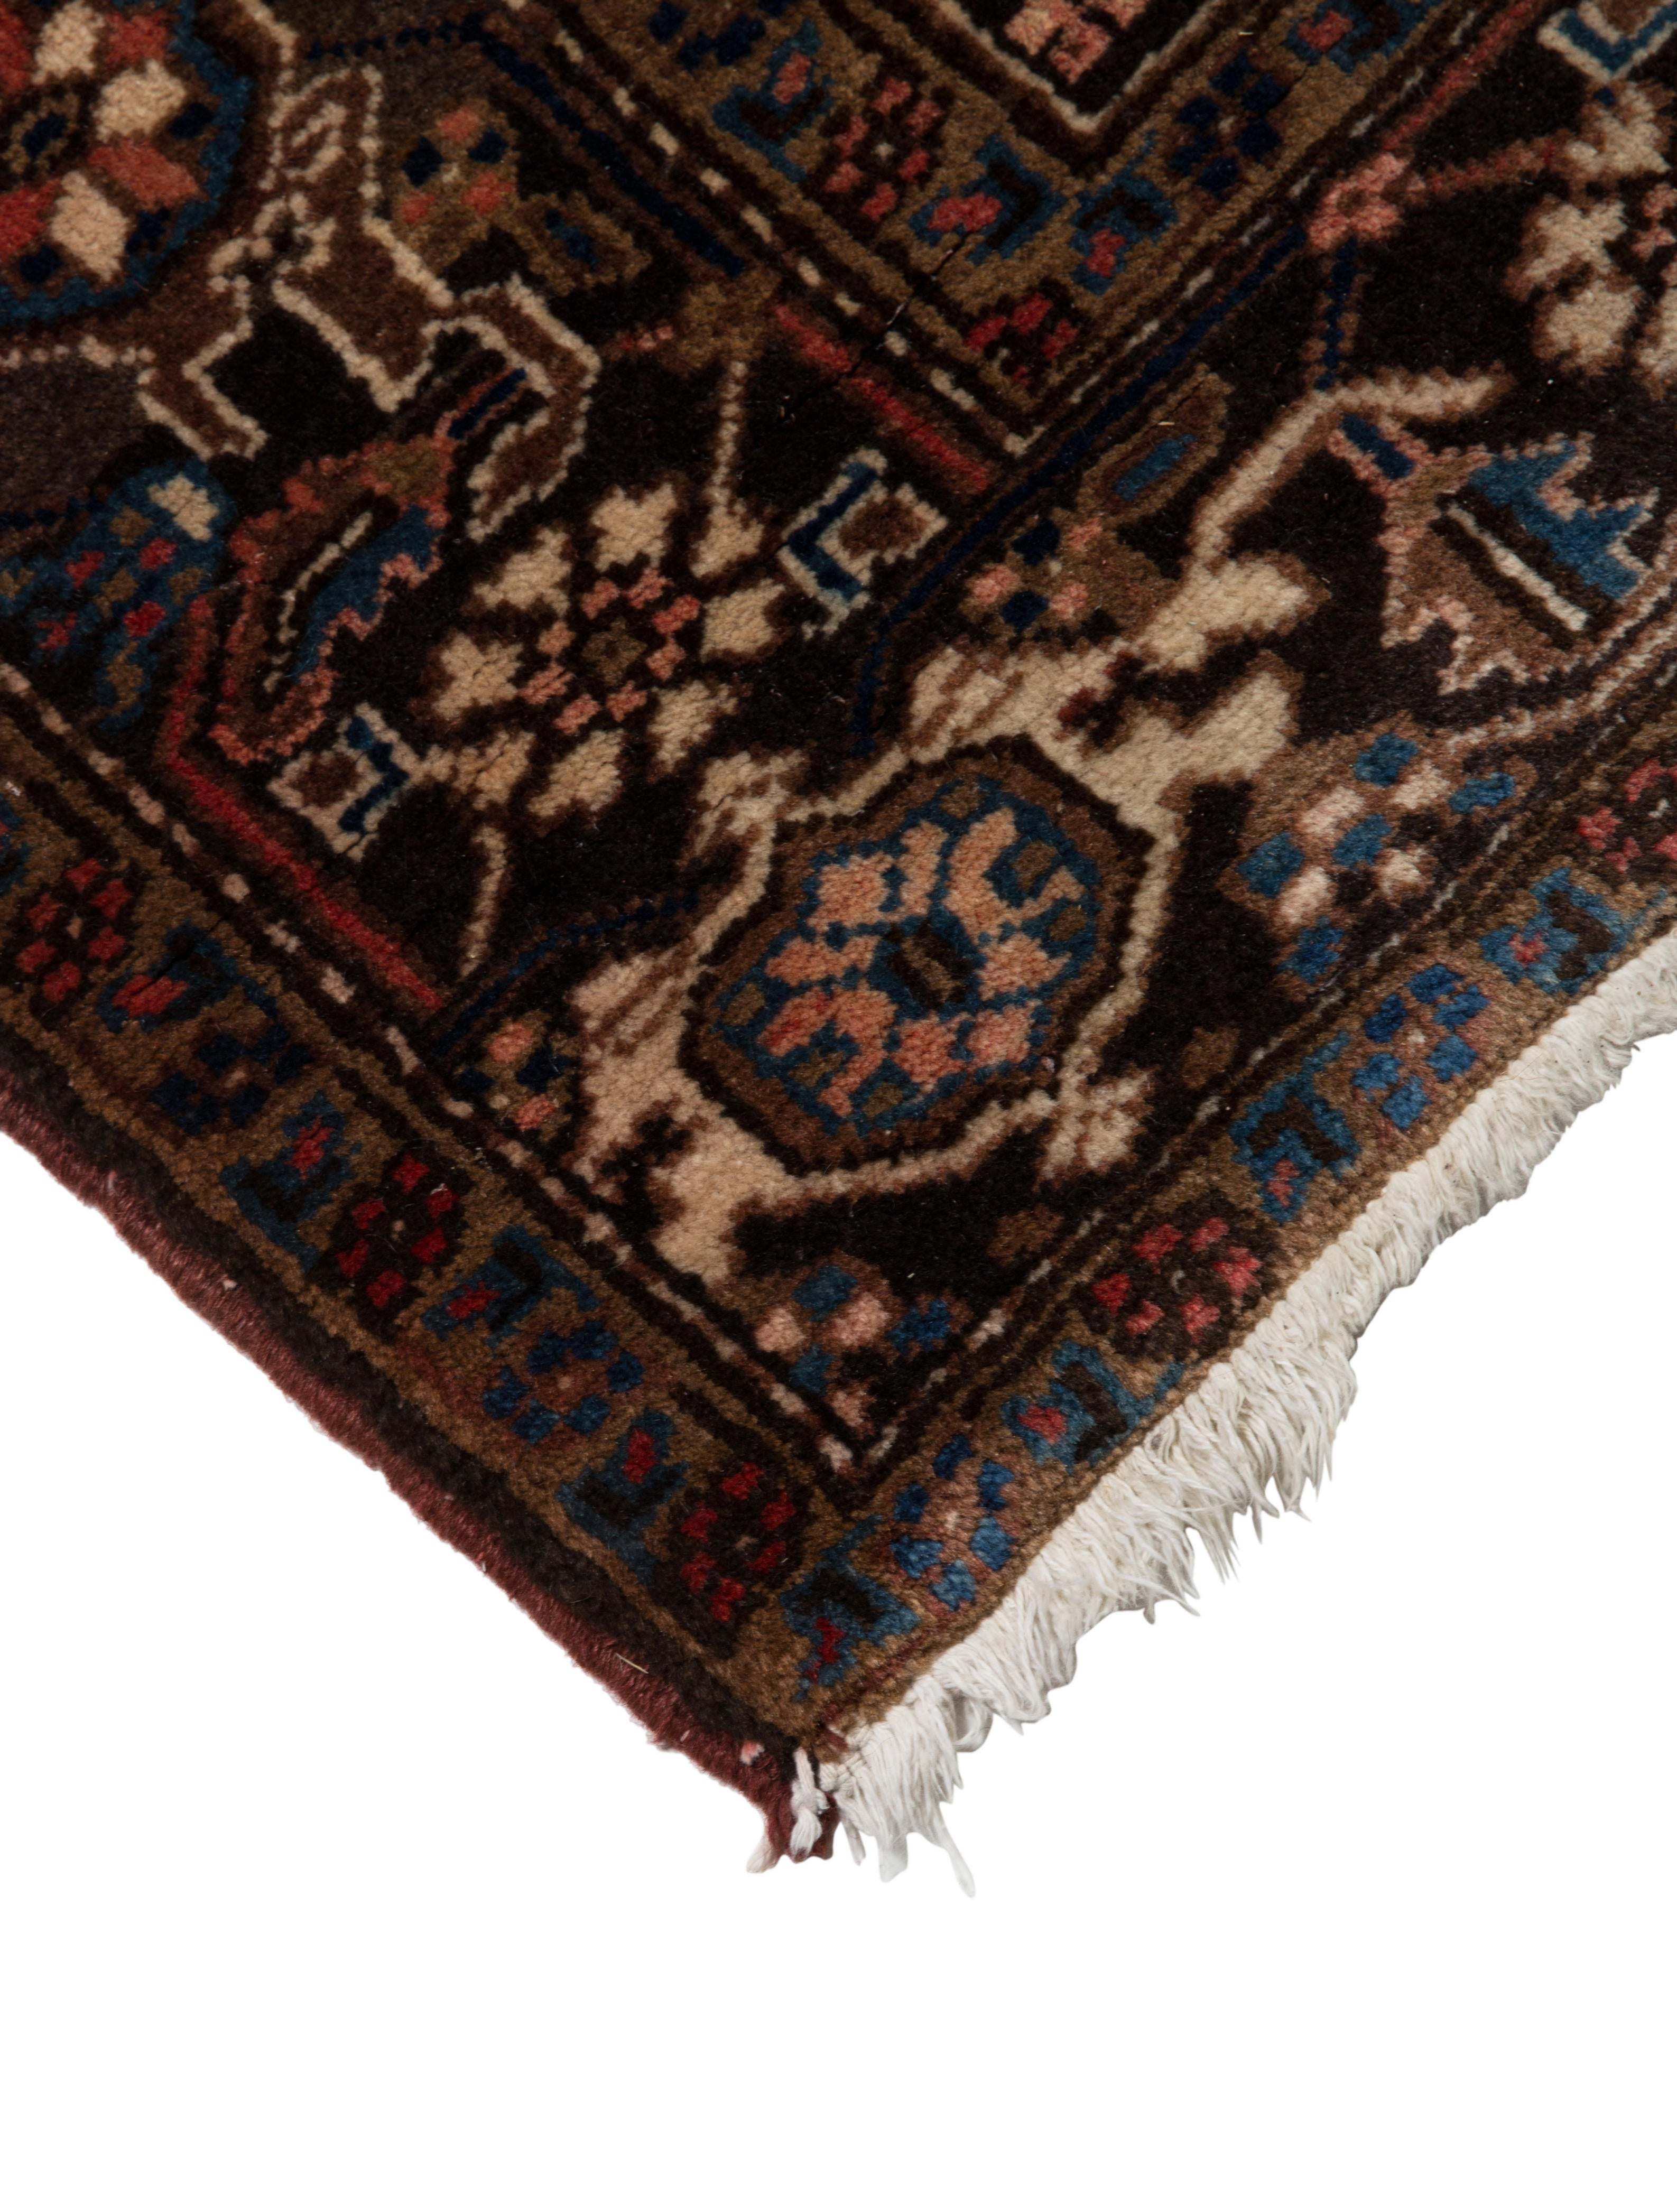 Hand Knotted Persian Rug Rugs Rug20114 The Realreal